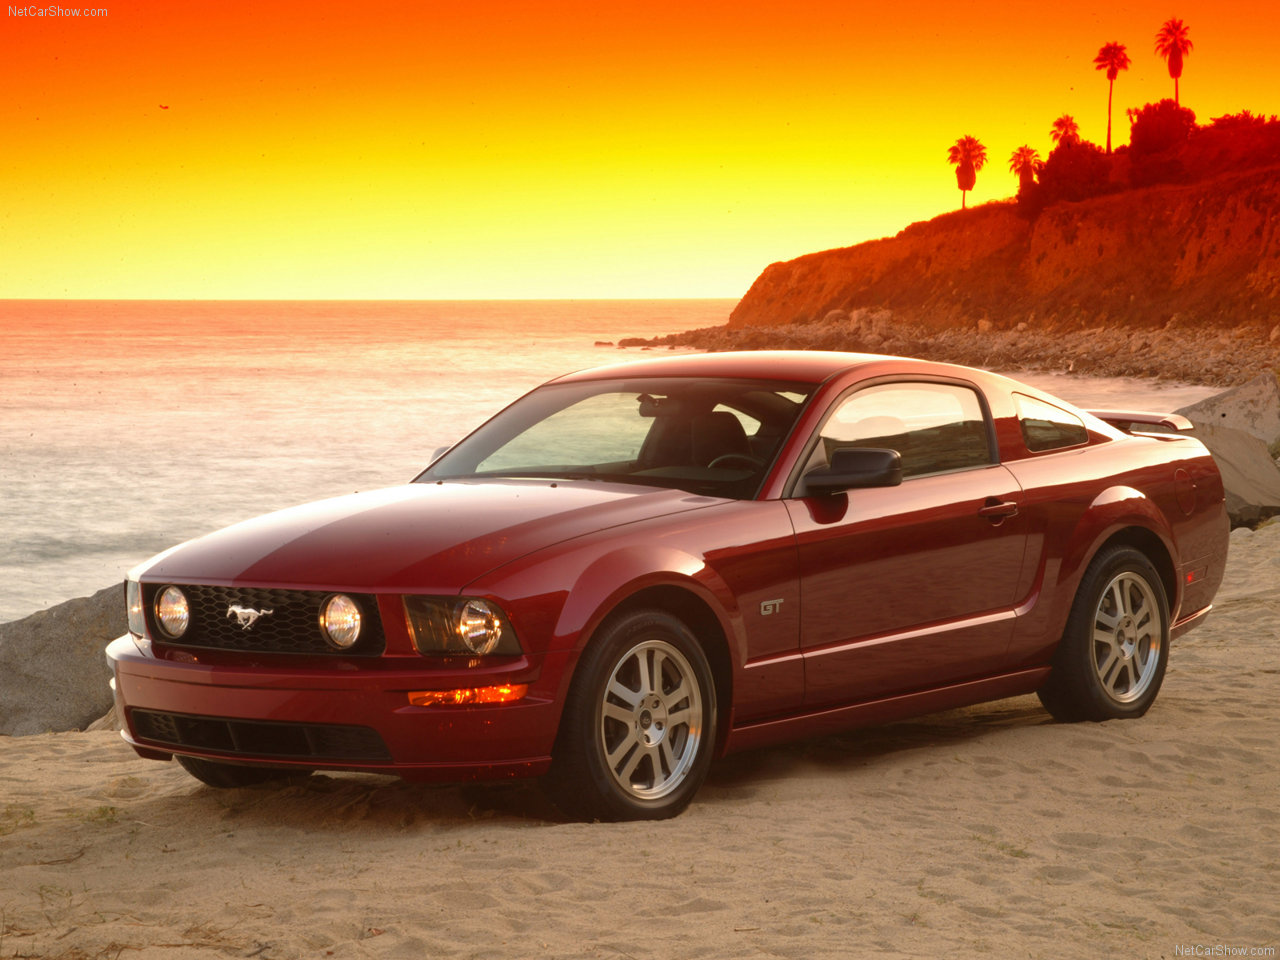 Ford Populaire Franais Dautomobiles 2005 Mustang Gt 1964